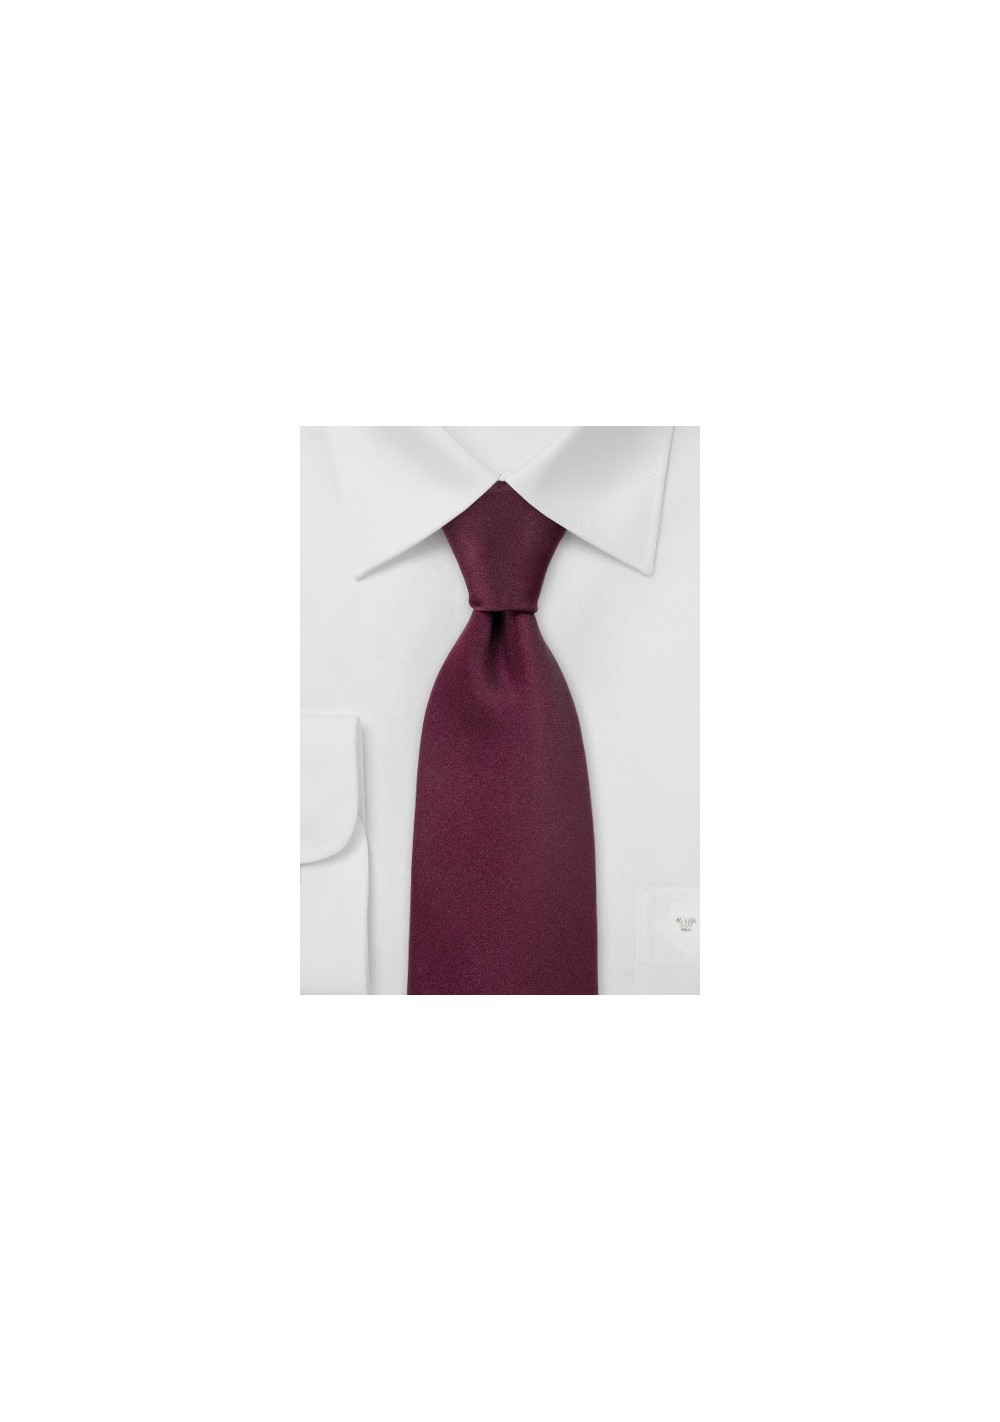 Solid Color Ties Burgundy Red